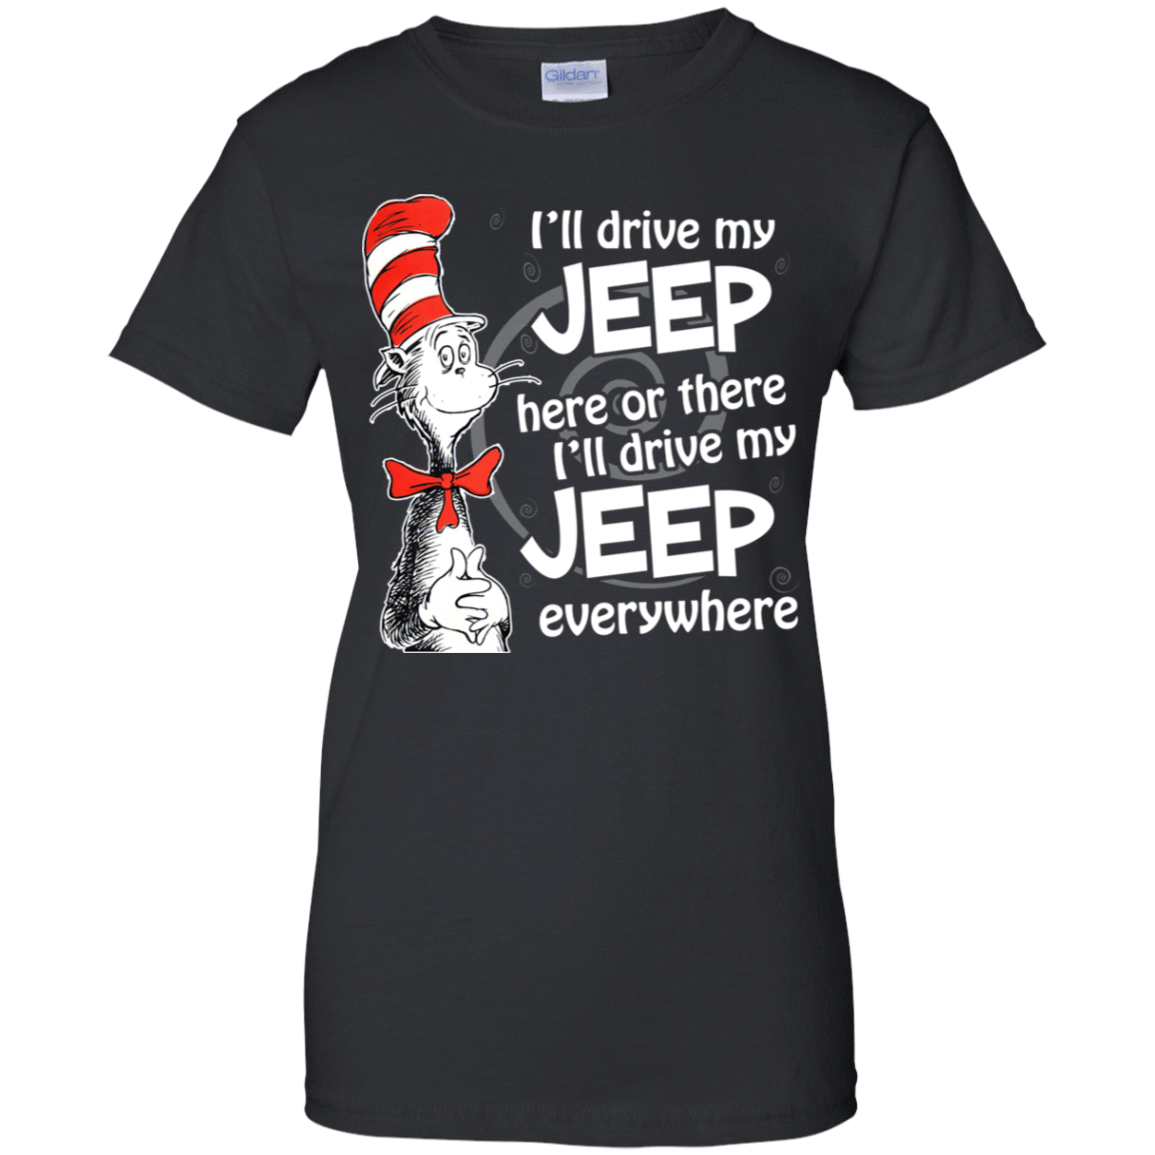 I'll Drive My Jeep Here Or There I'll Driver My Jeep Everywhere 939-9248-73422718-44695 - Tee Ript